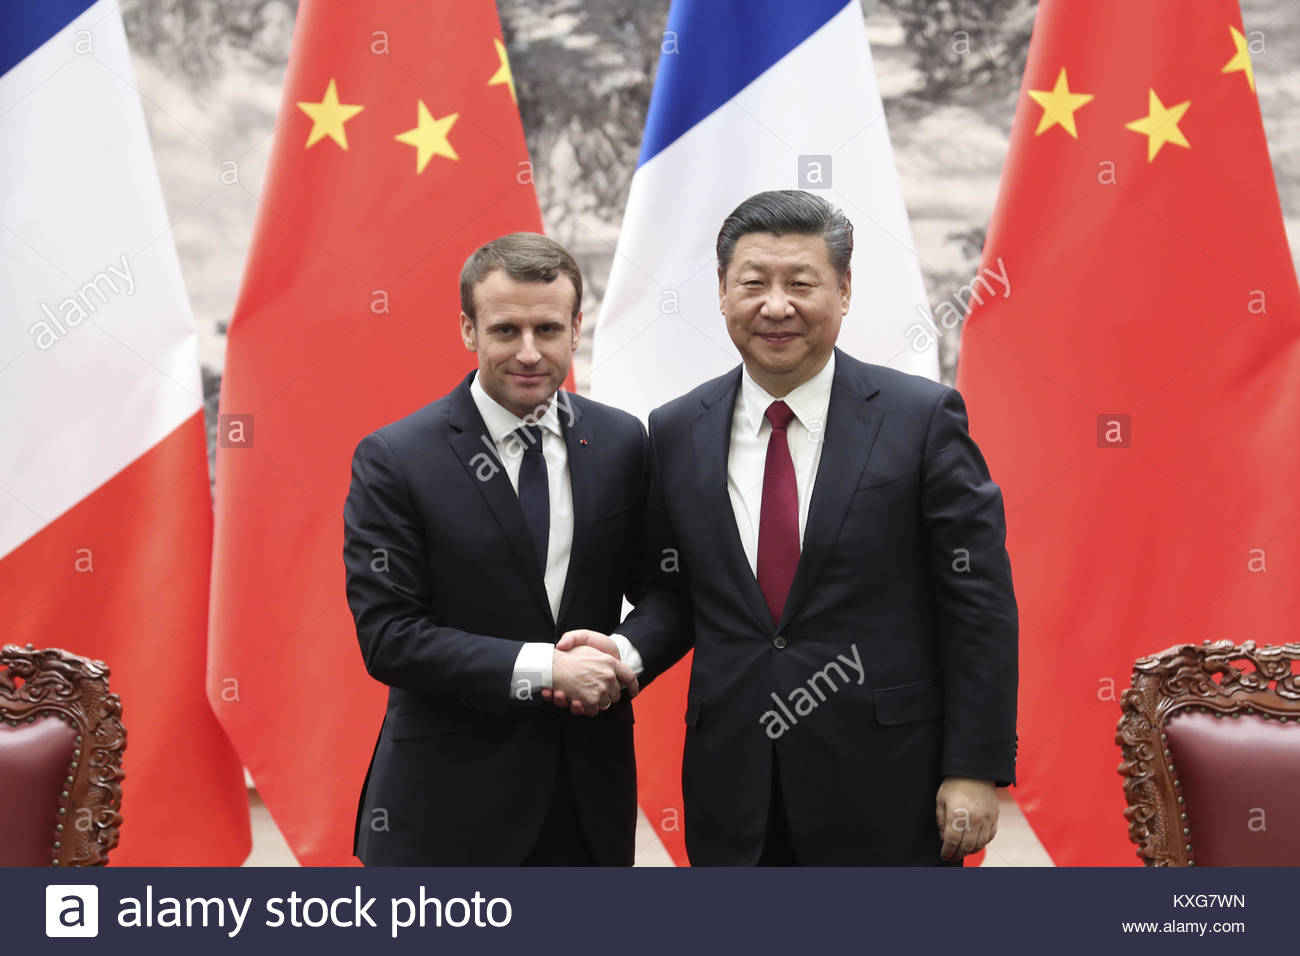 Beijing, China. 09th Jan, 2018. Chinese President Xi Jinping meeting with French President Macron in Beijing, China - Stock Image